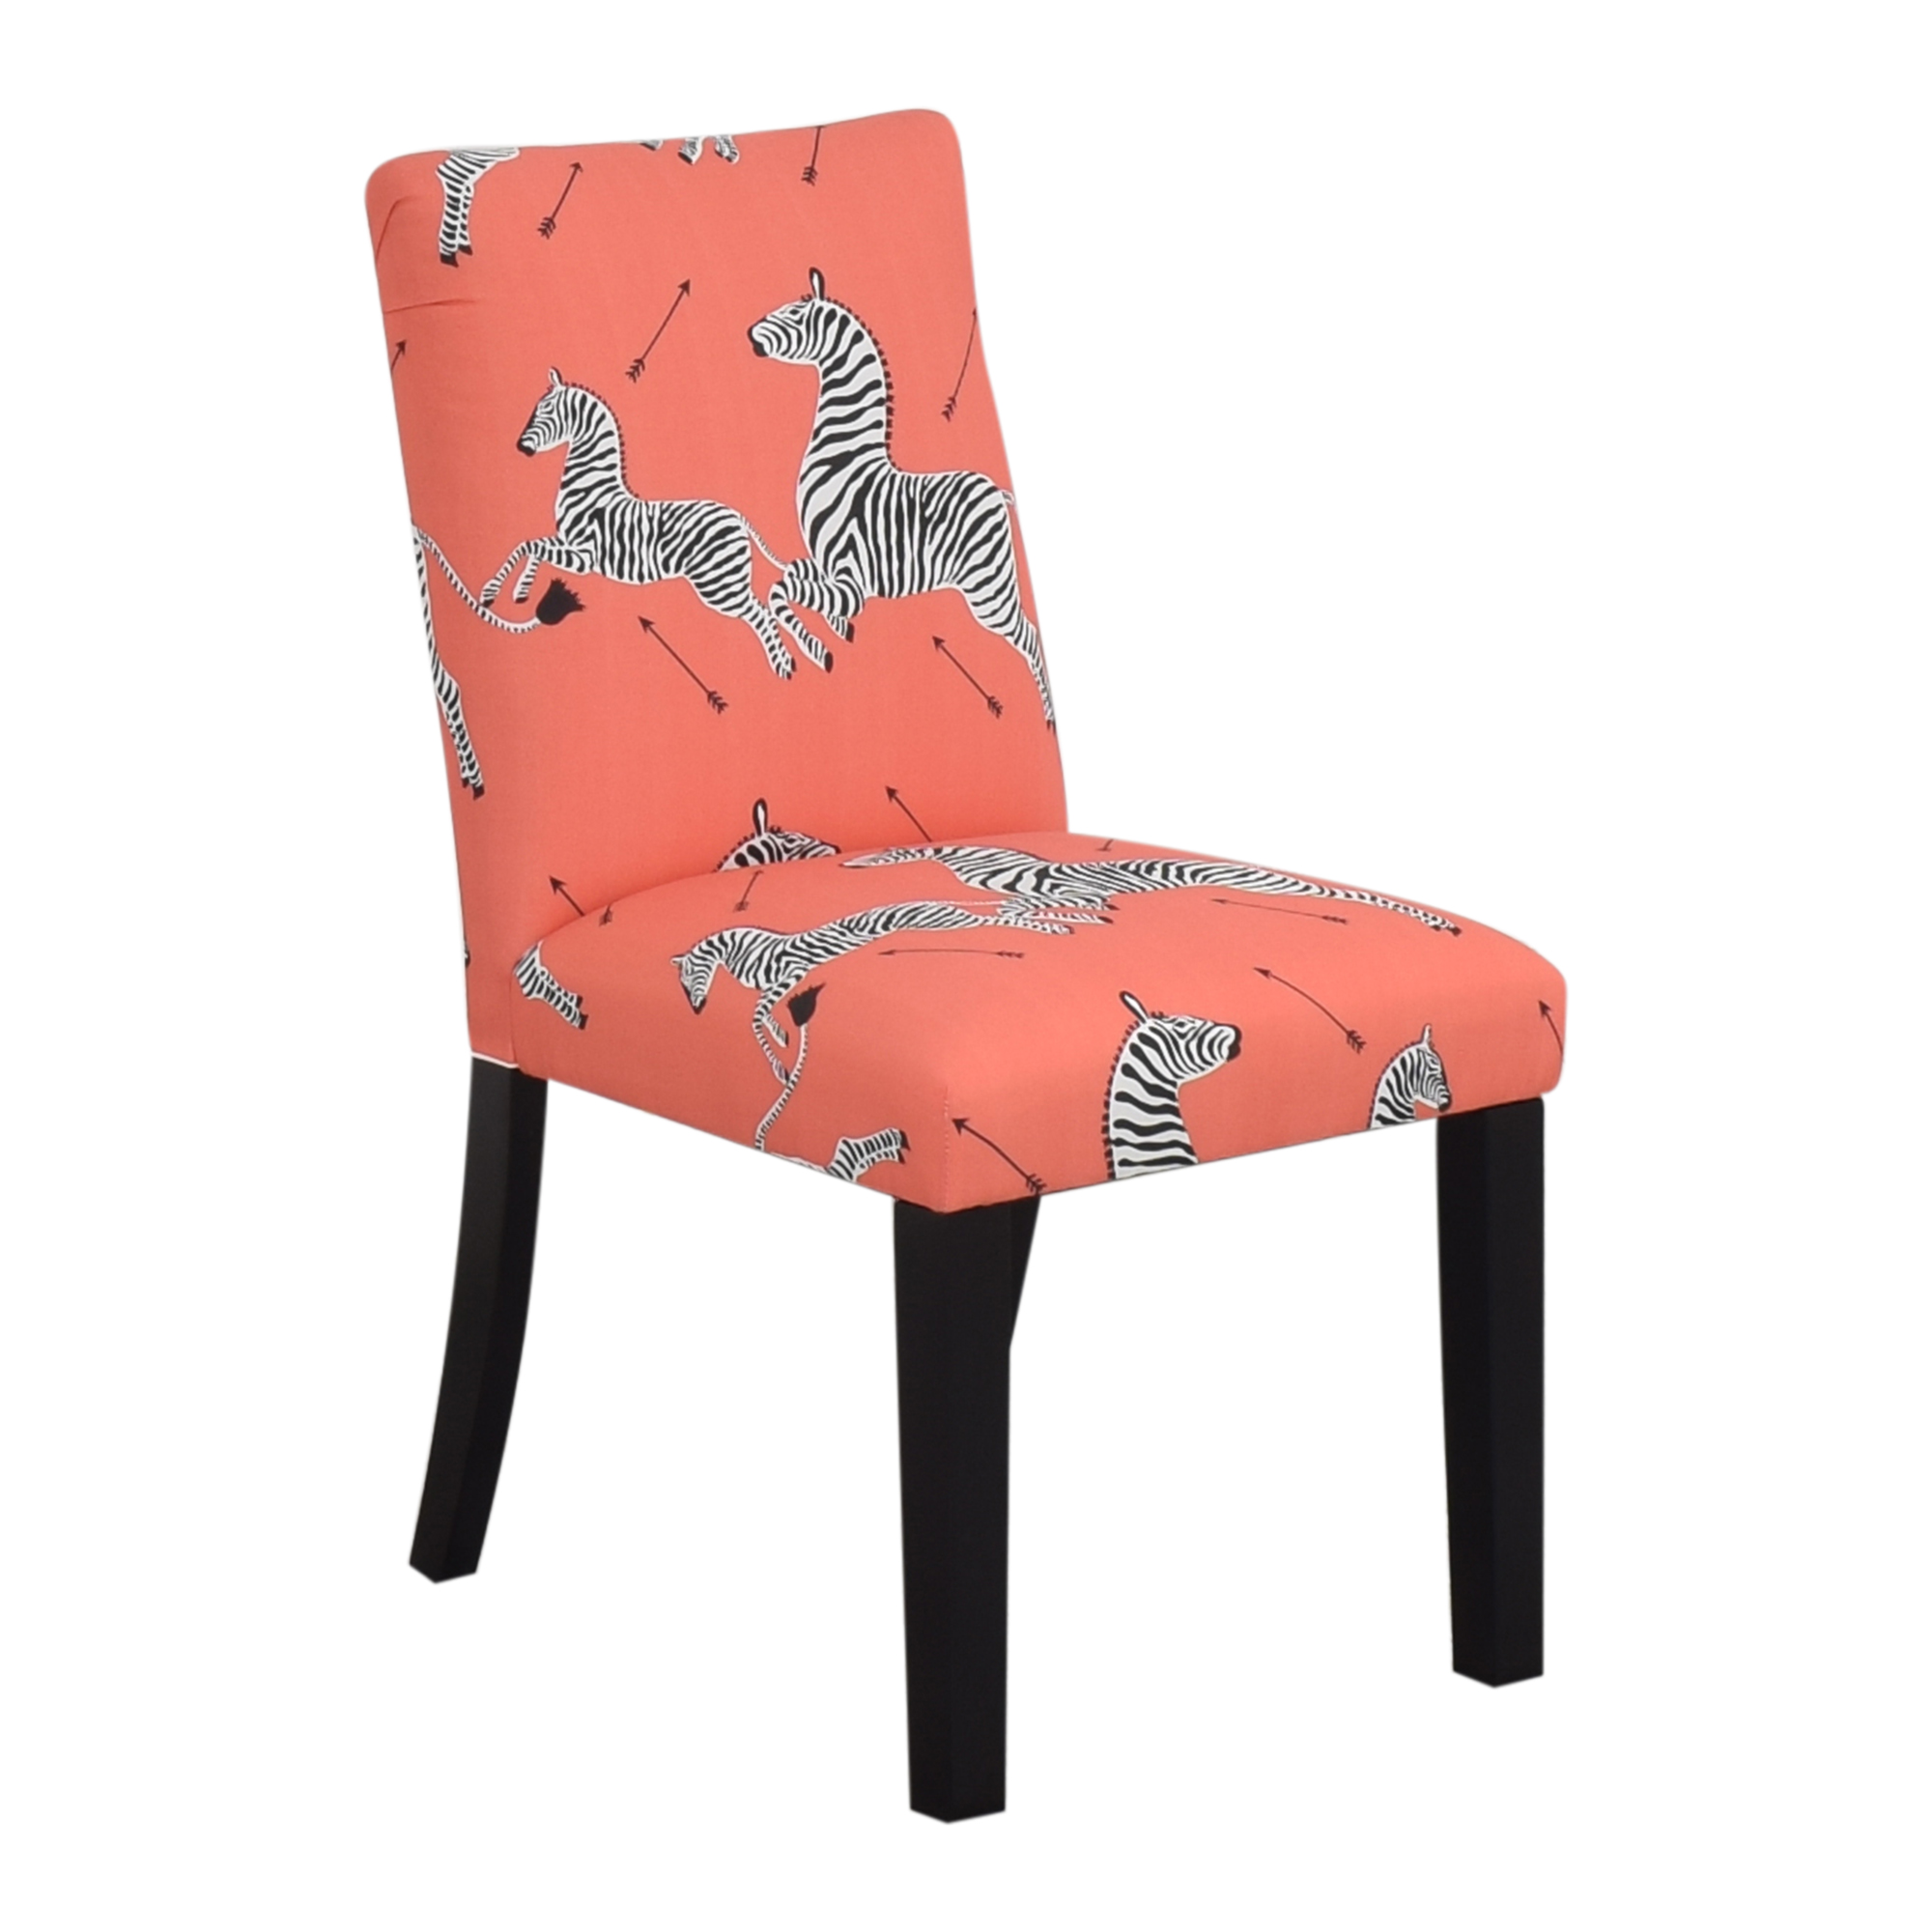 shop The Inside The Inside Coral Zebra Classic Dining Chair online